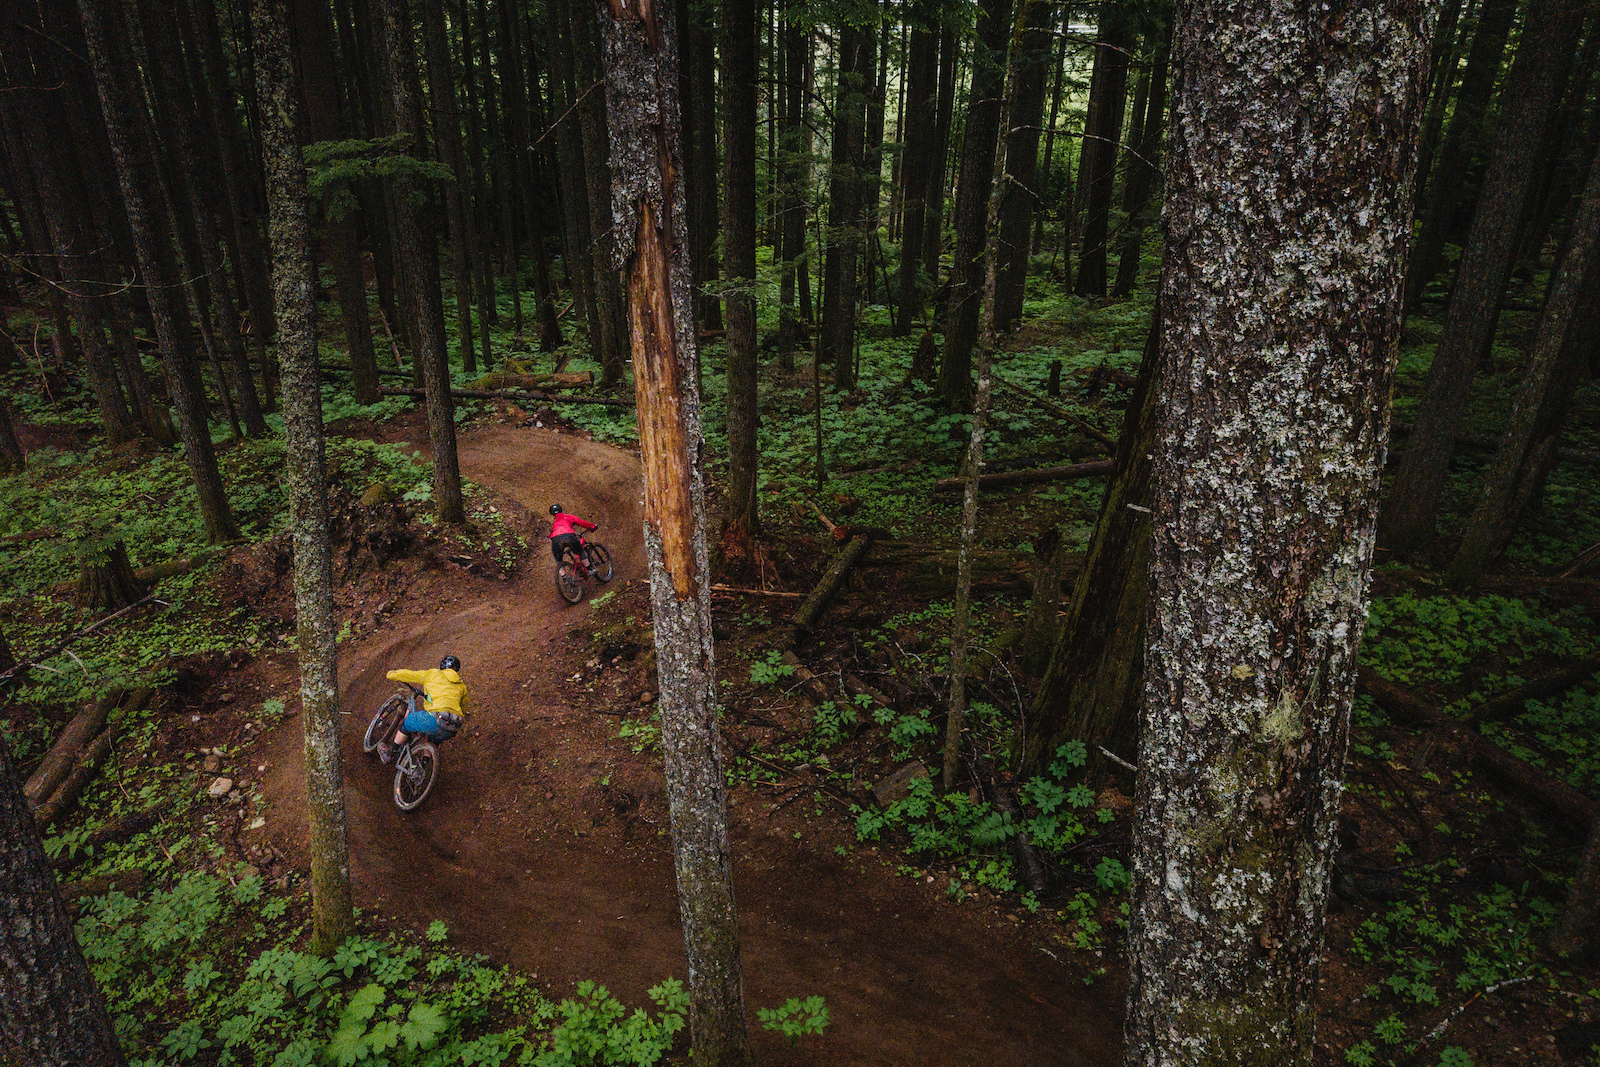 Doing laps with friends is what It s all about. Trails made for every skill level can be enjoyed by all riders.